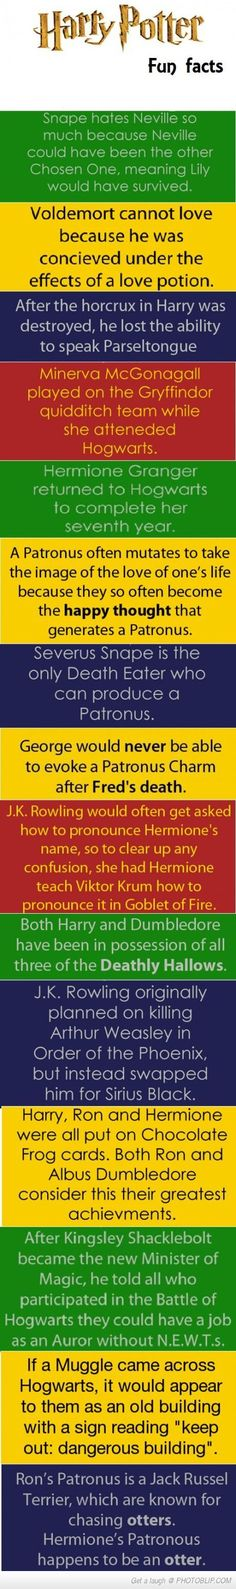 Harry Potter Fun Facts - The last one is my favorite!!! -